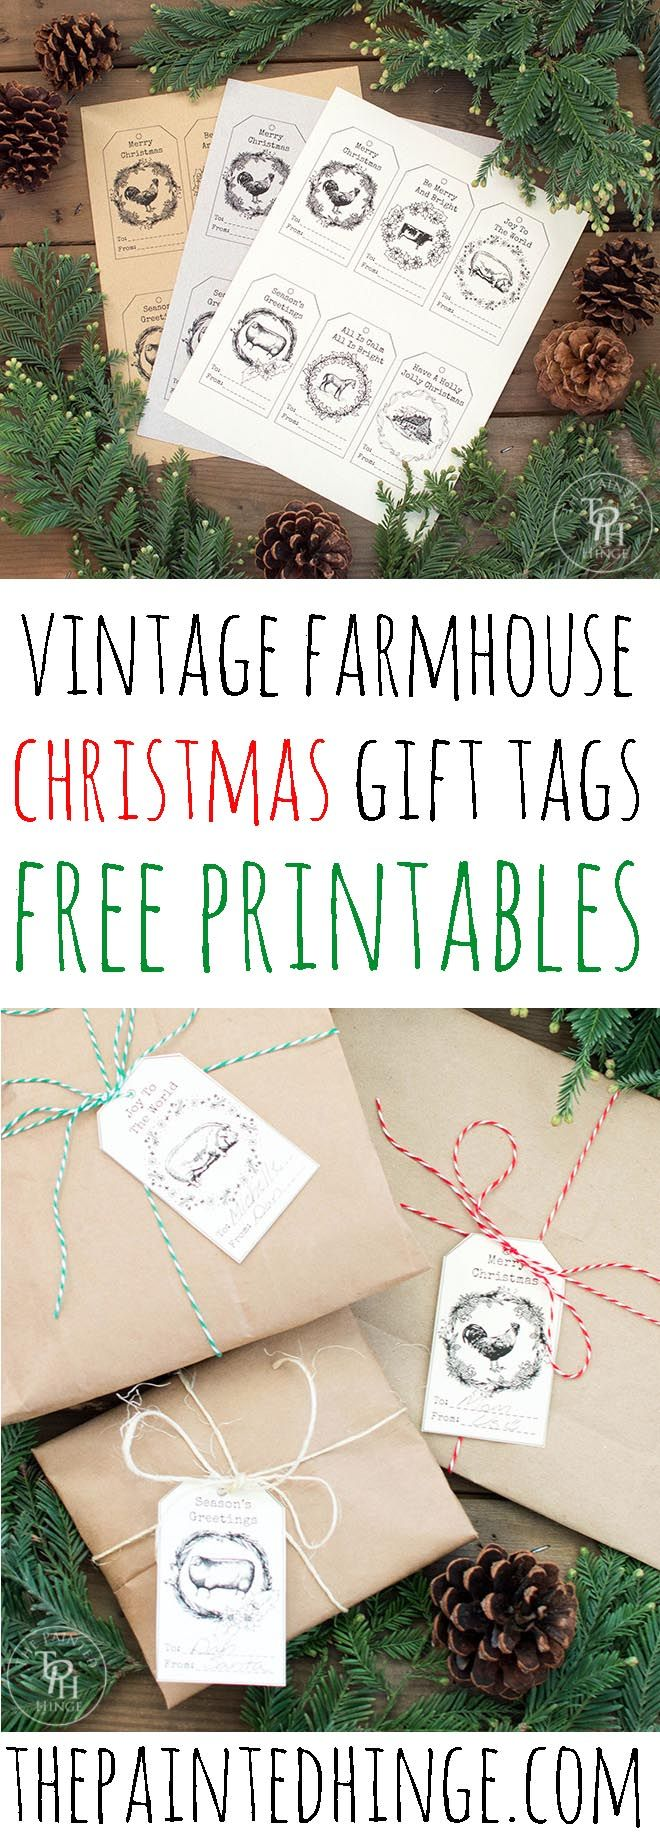 Vintage Farmhouse Christmas Gift Tags! Free Printables!